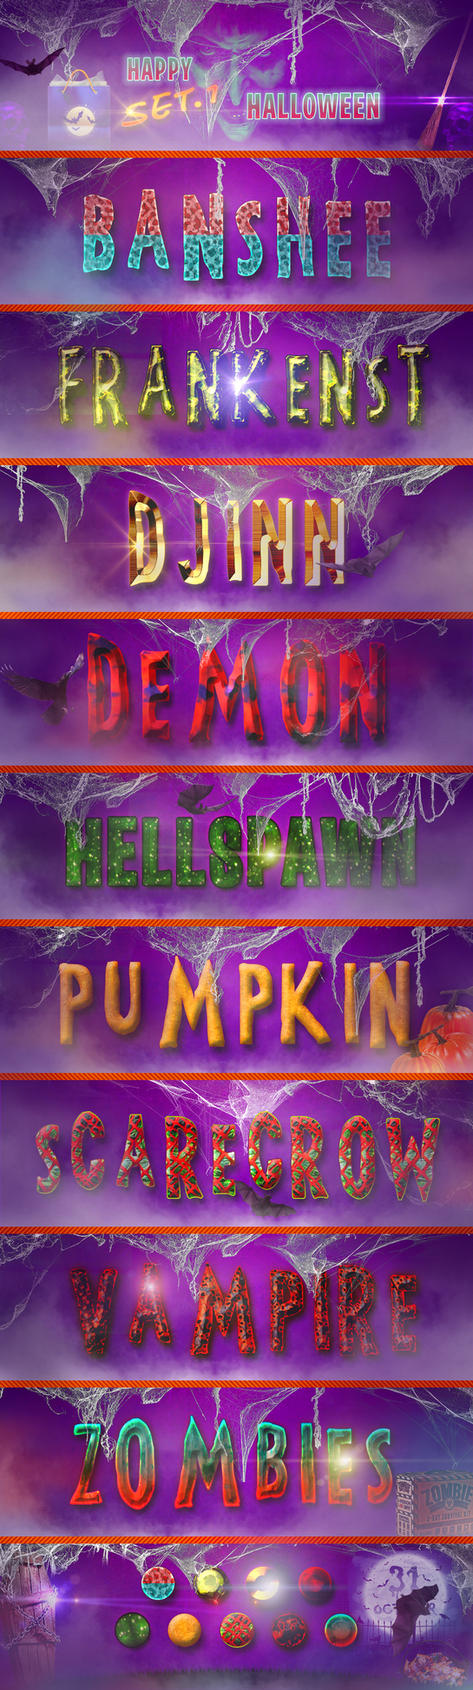 Halloween-Text-Effects-byDabbexsahi by dabbex30